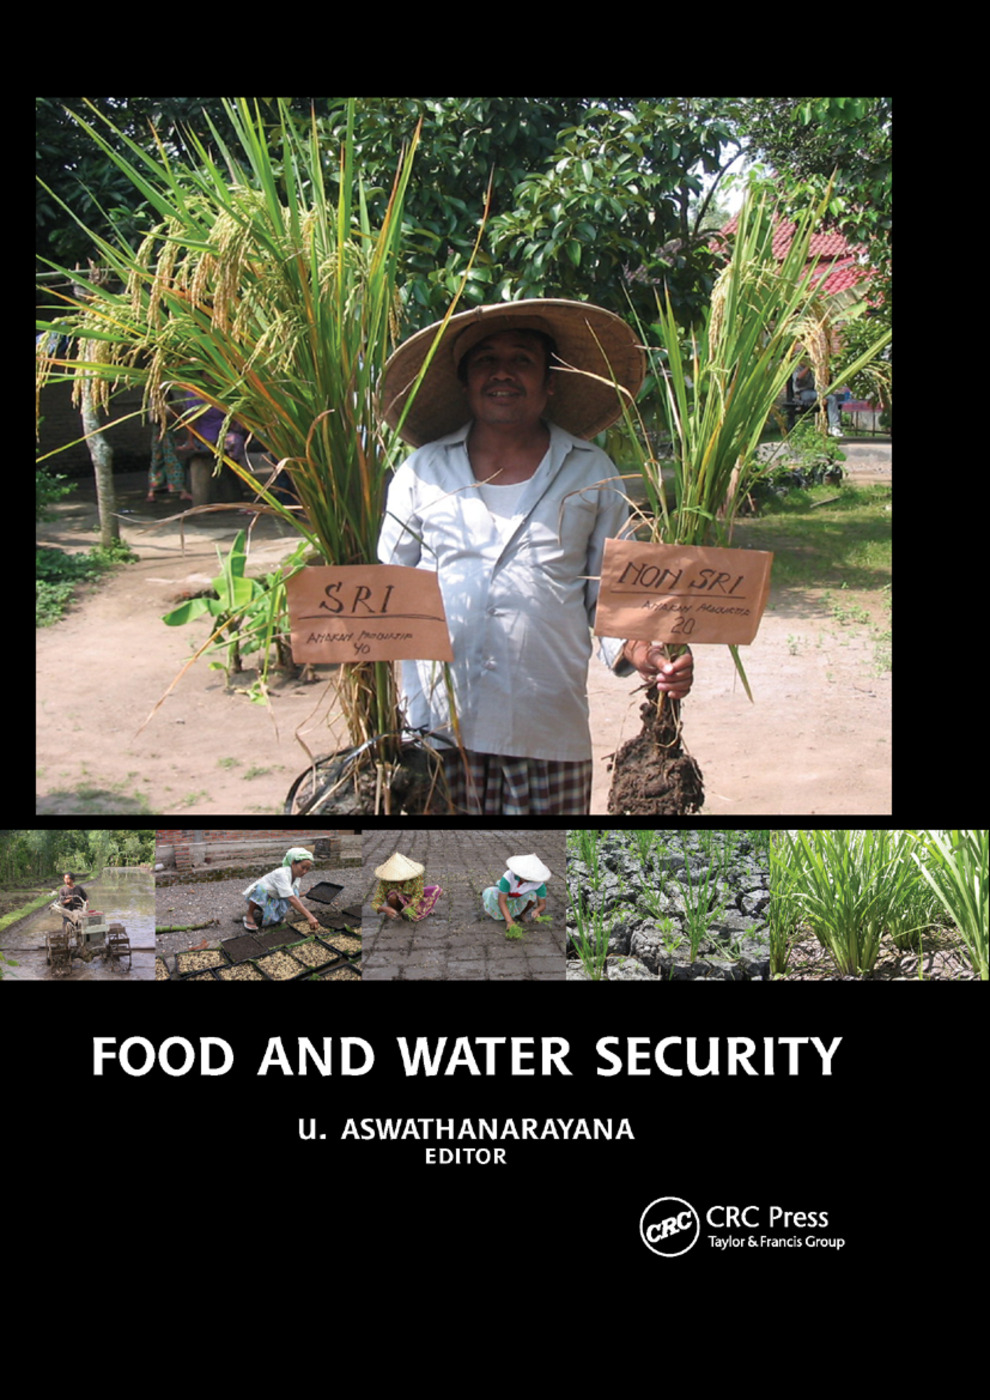 System of Rice Intensification (SRI) to enhance both food and water security